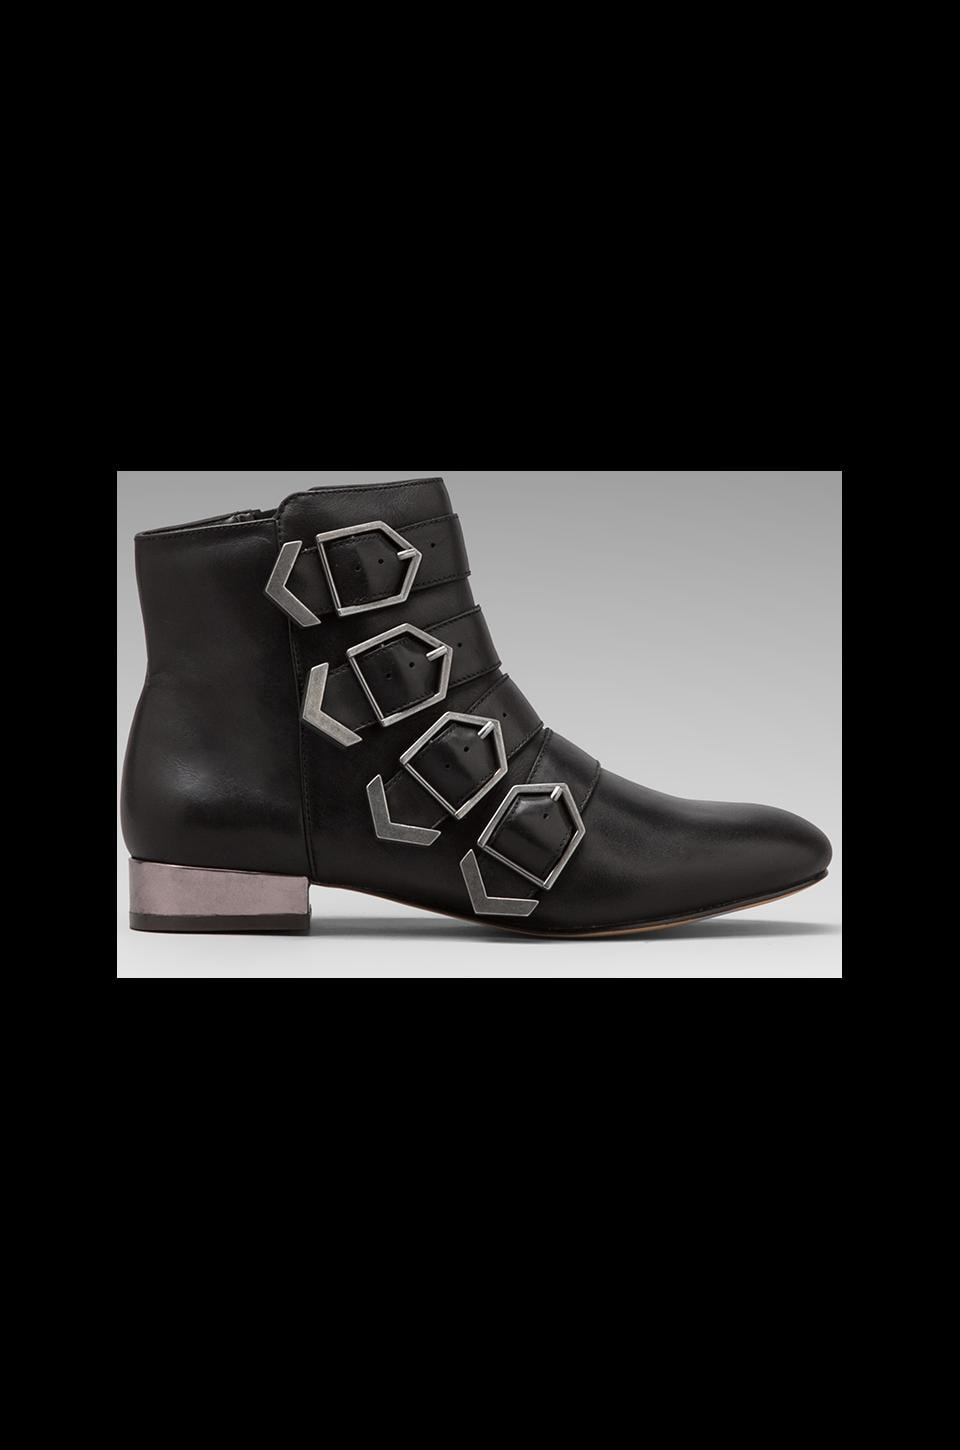 Sam Edelman Nolan Boot in Black